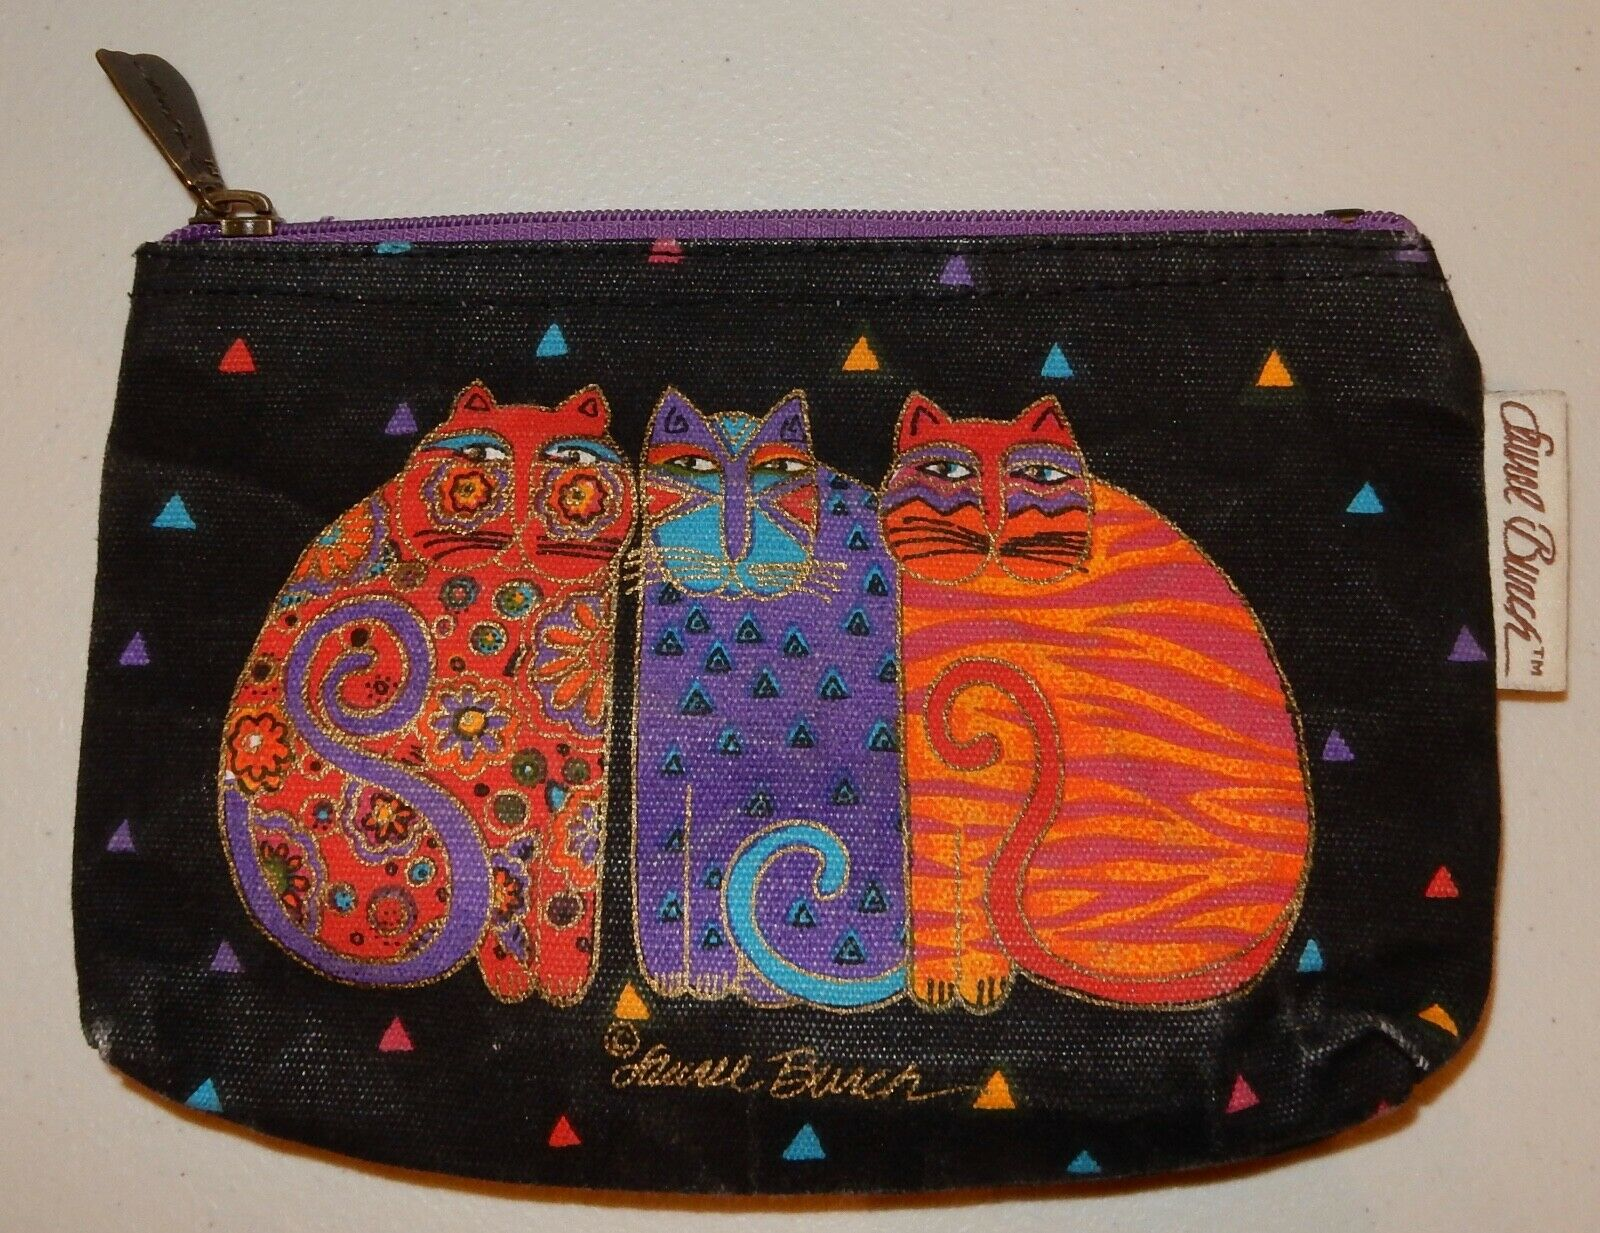 Laurel Burch Cat Tote Bag & Pouch Used - image 3